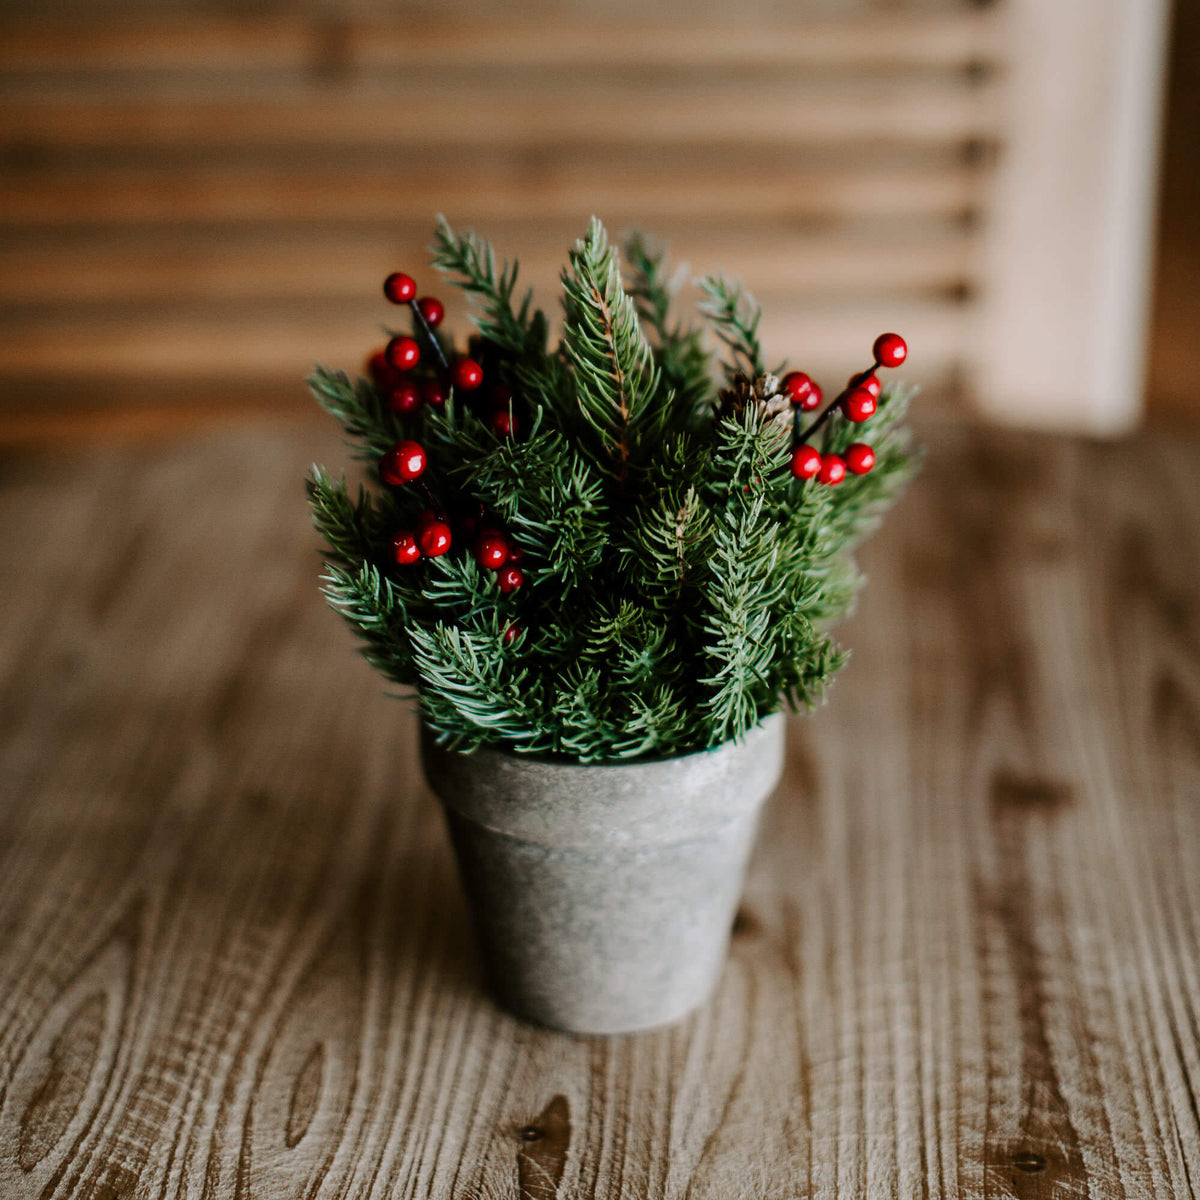 A 9 and half inch faux spruce sphere with tiny pinecones and red berry accents, inside a rustic gray pot for winter tabletop decorating